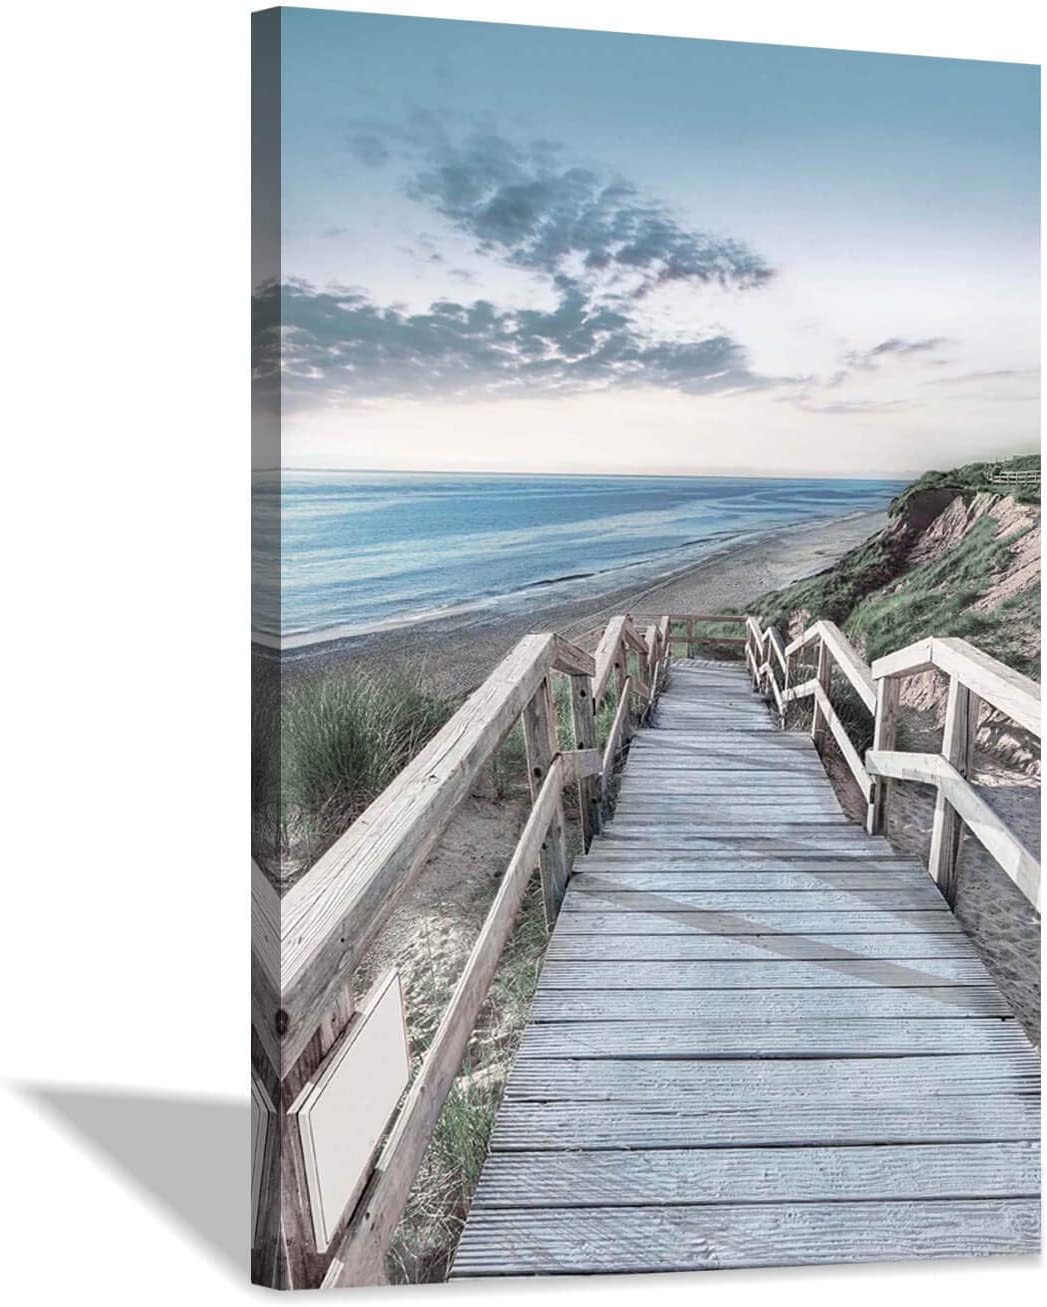 Beachside Wooden Path Wall Art: Bridge Boardwalk Stair Graphic Art on Wrapped Canvas for Wall Decor (24''x36'')